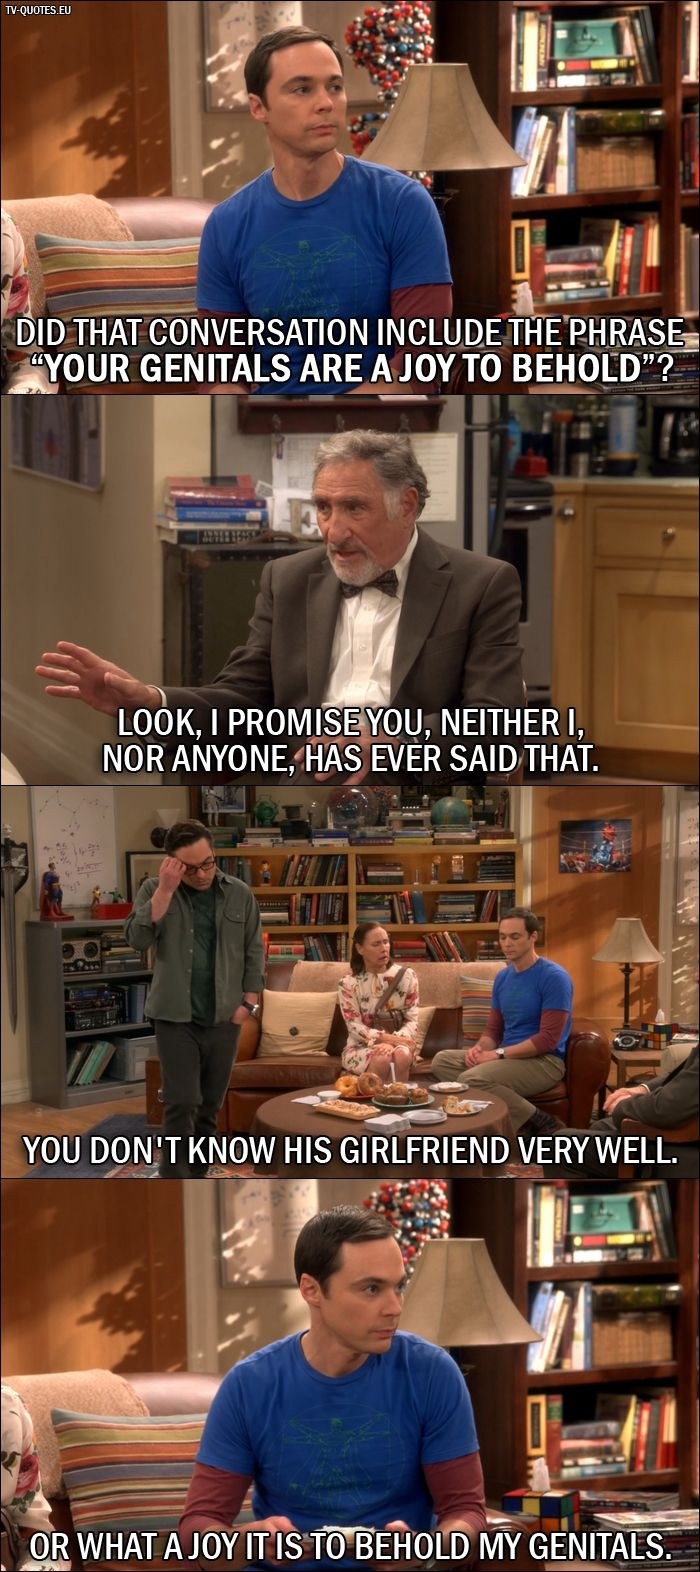 The Best Quote from The Big Bang Theory and Sheldon Cooper - The Funny